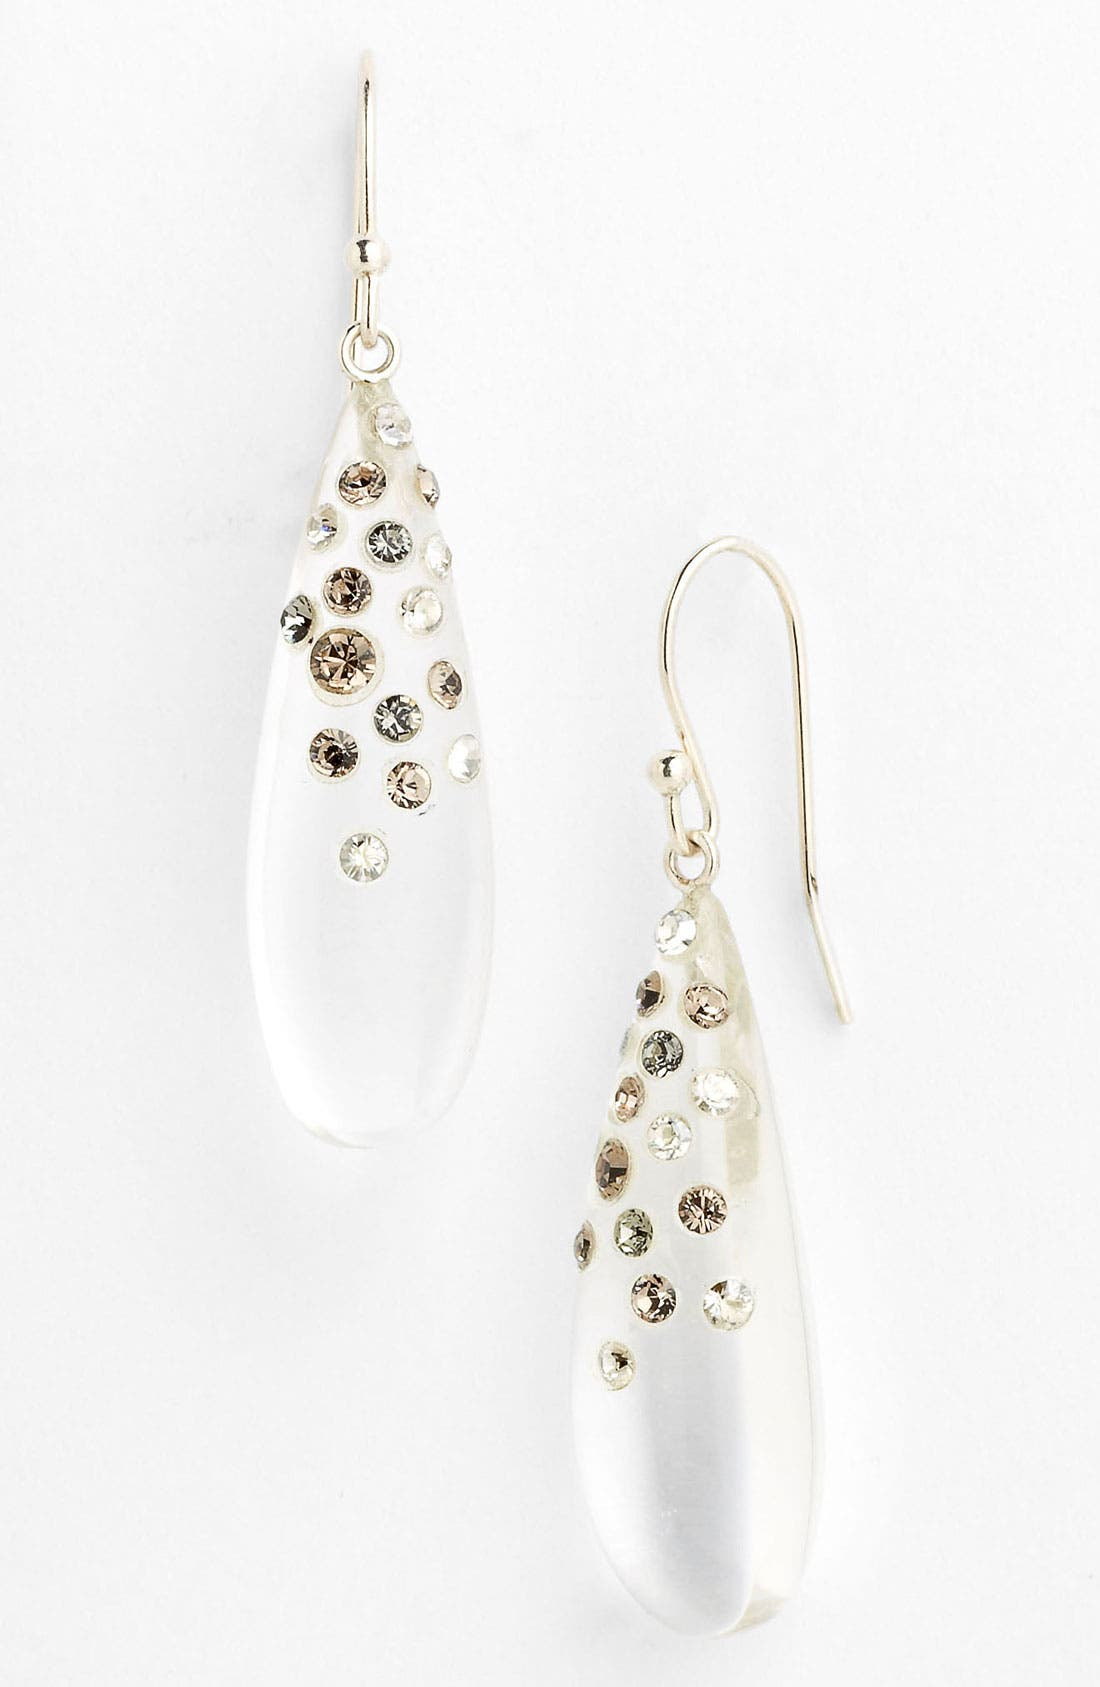 Alternate Image 1 Selected - Alexis Bittar 'Dust' Long Raindrop Earrings (Nordstrom Exclusive)